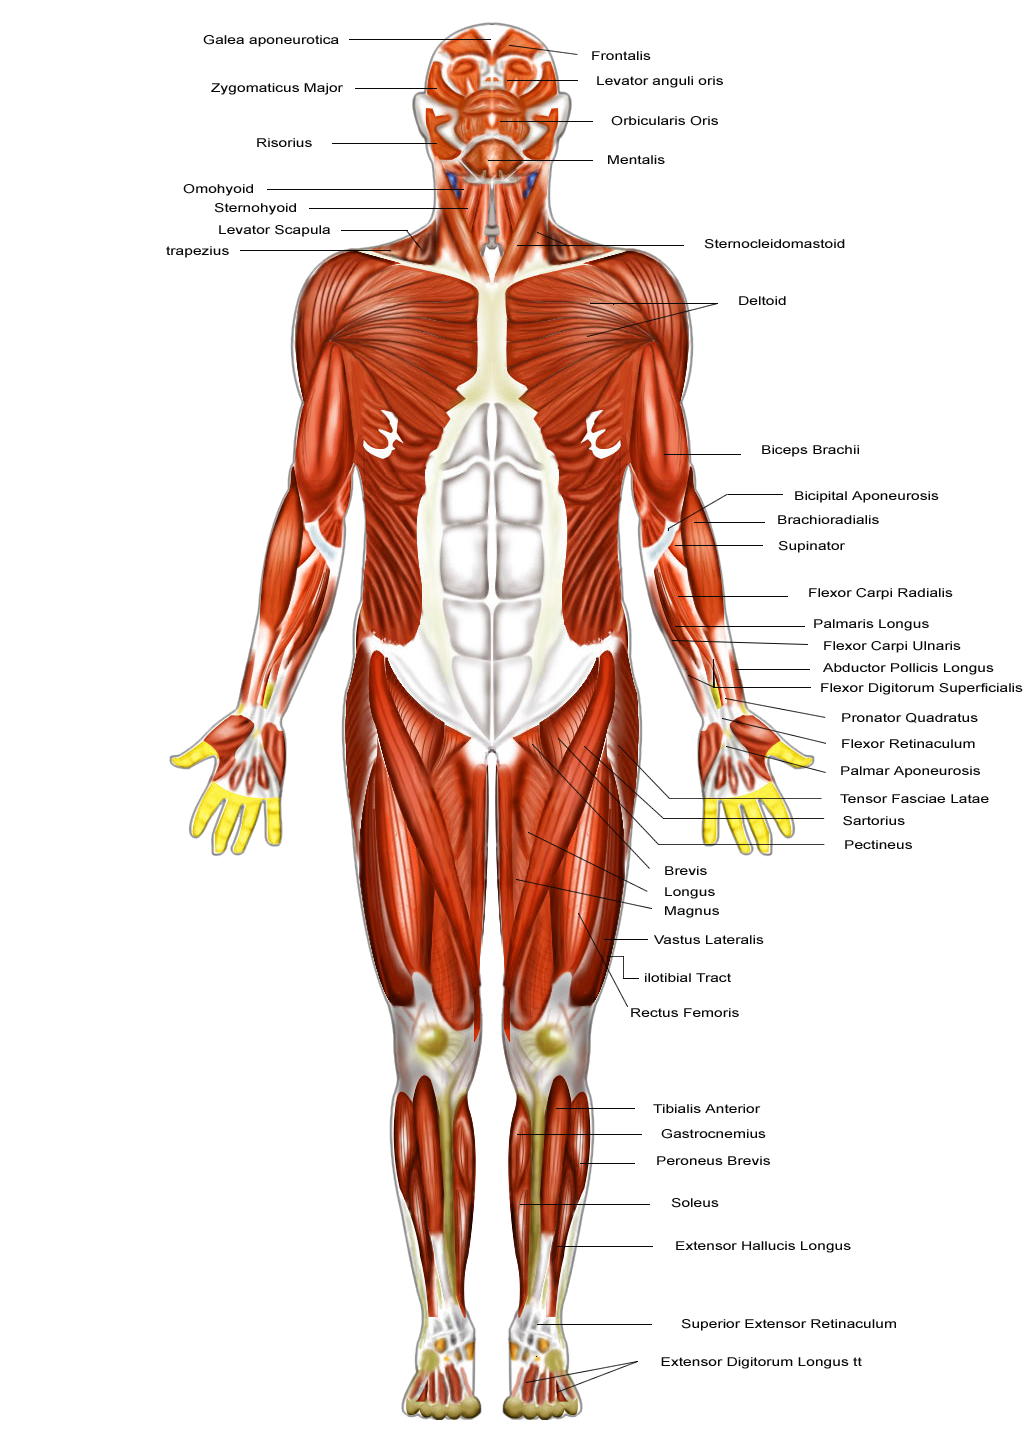 Muscle movement png. Muscular system desimd